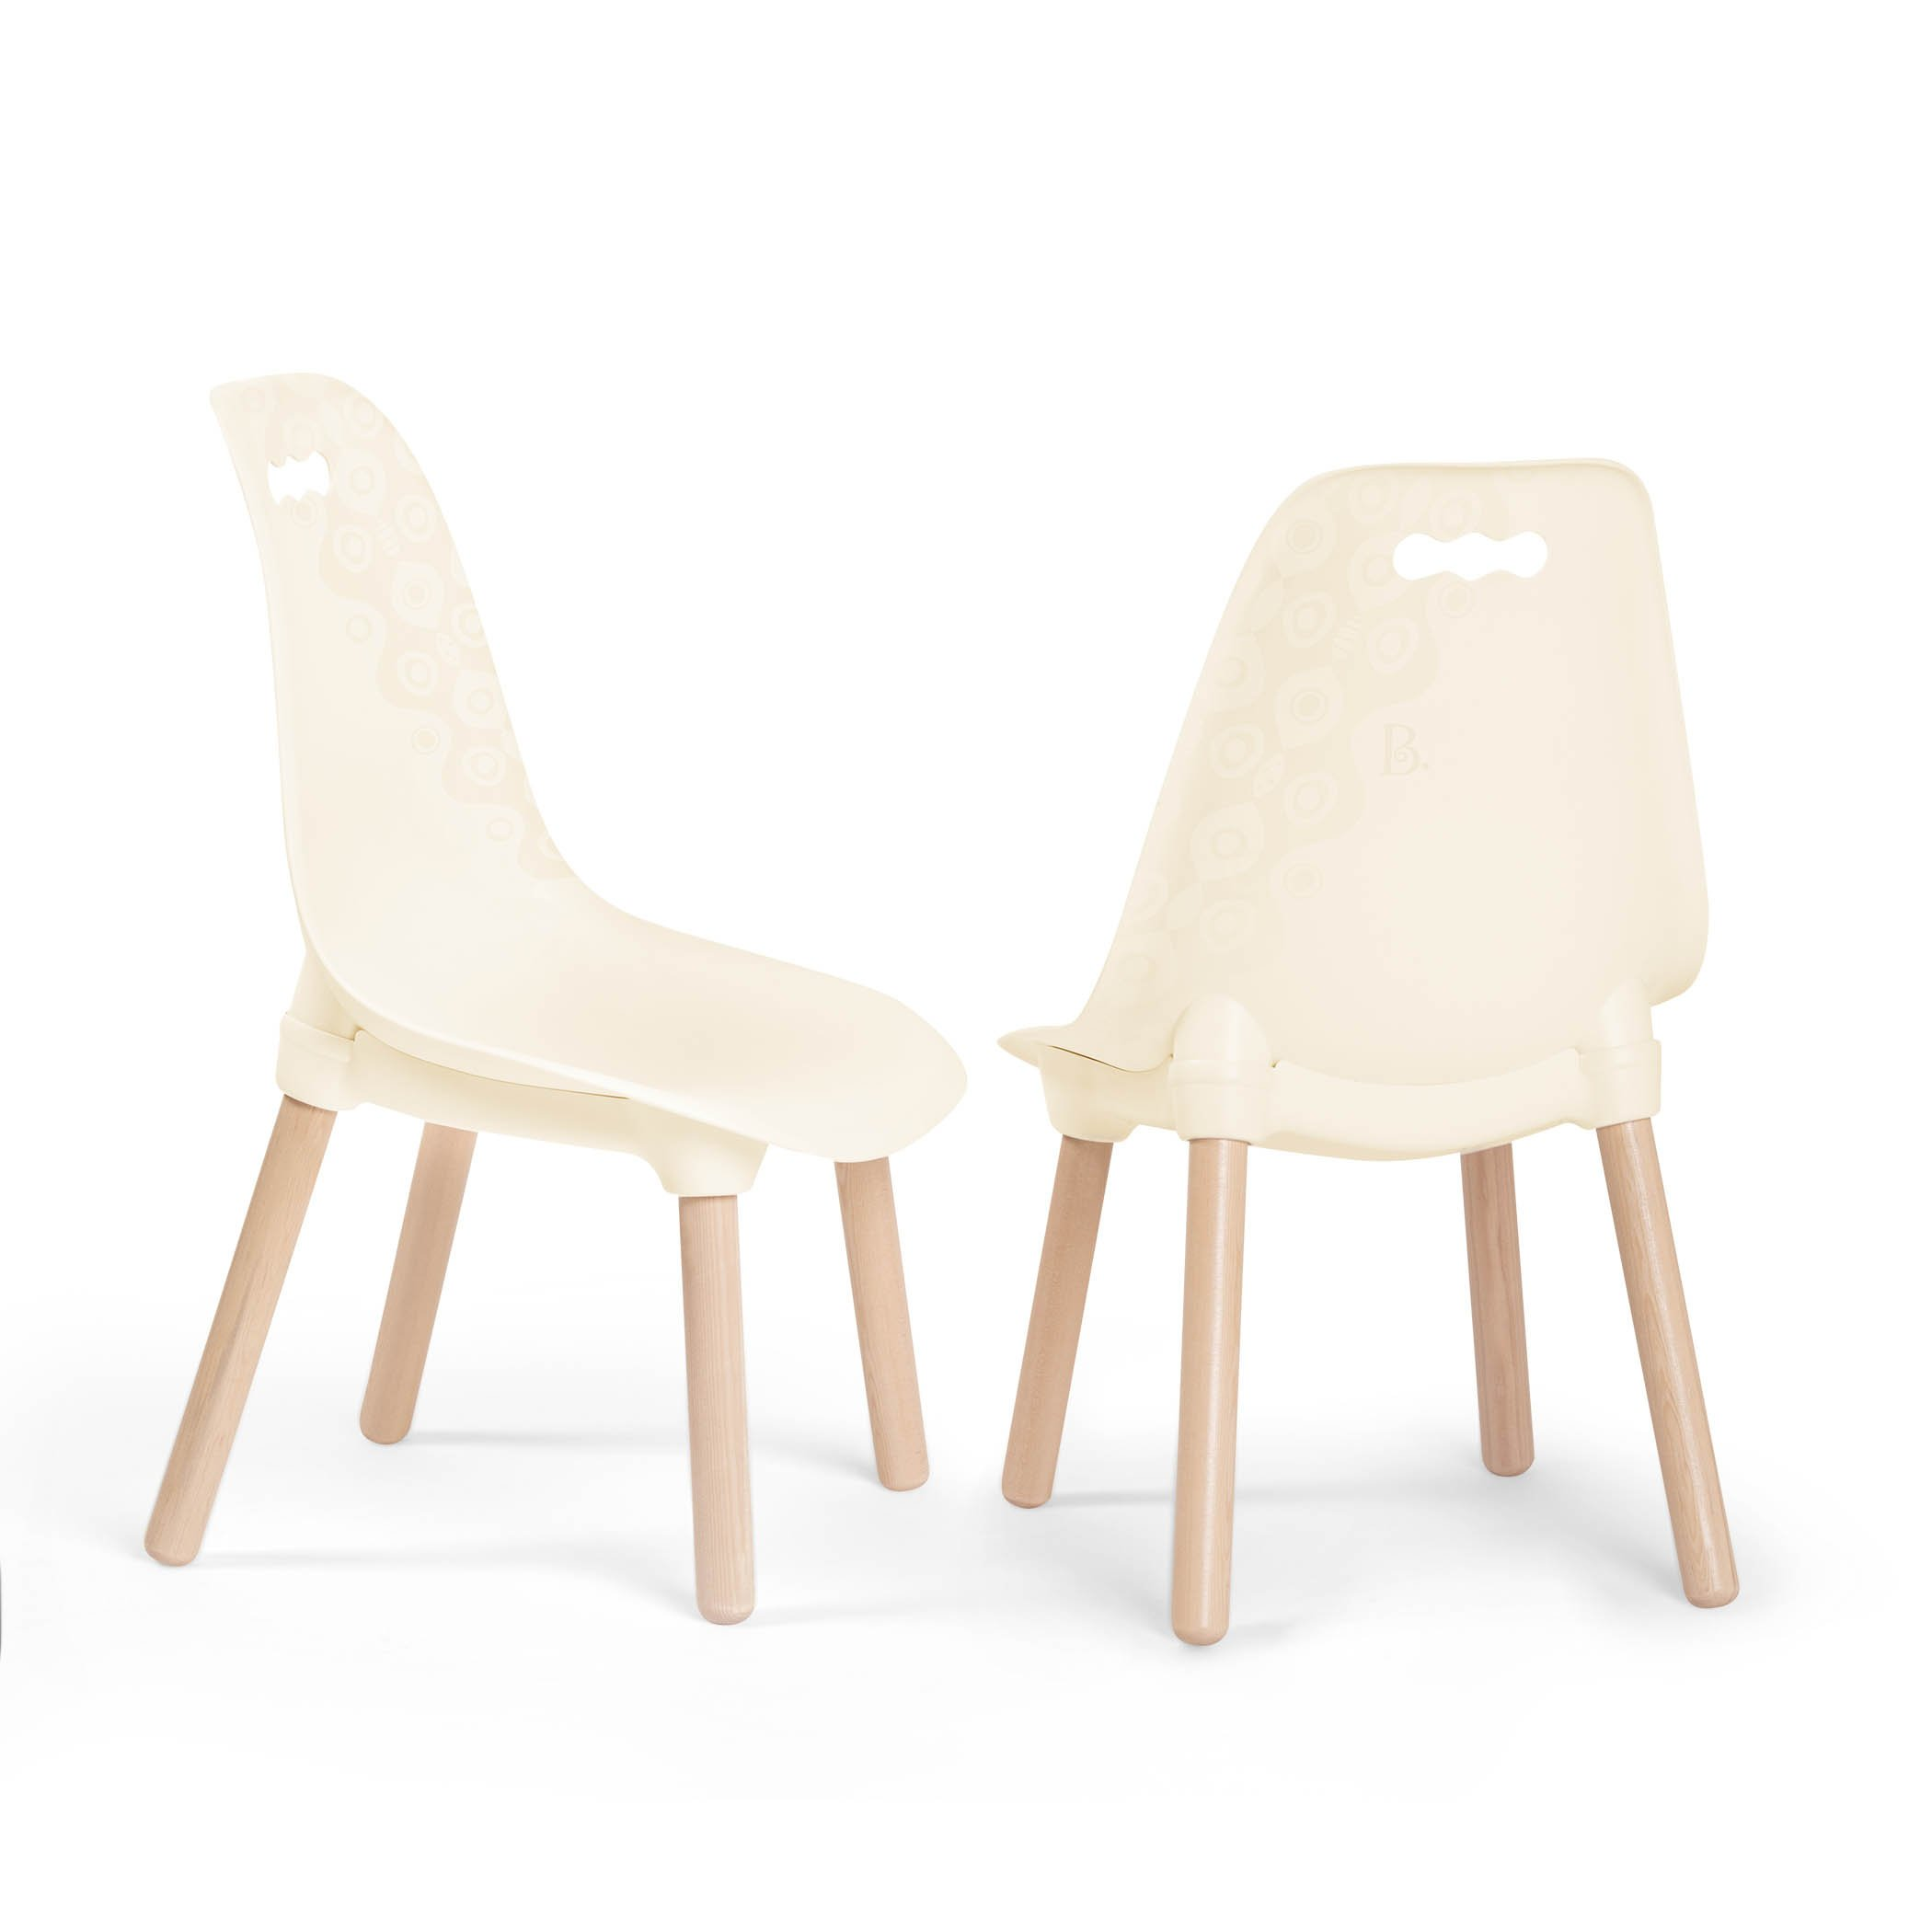 B. spaces by Battat Kid Century Modern: Trendy Toddler Chair Set of Two Kids Chairs – Kids Furniture Set for Toddlers and Kids – Ivory